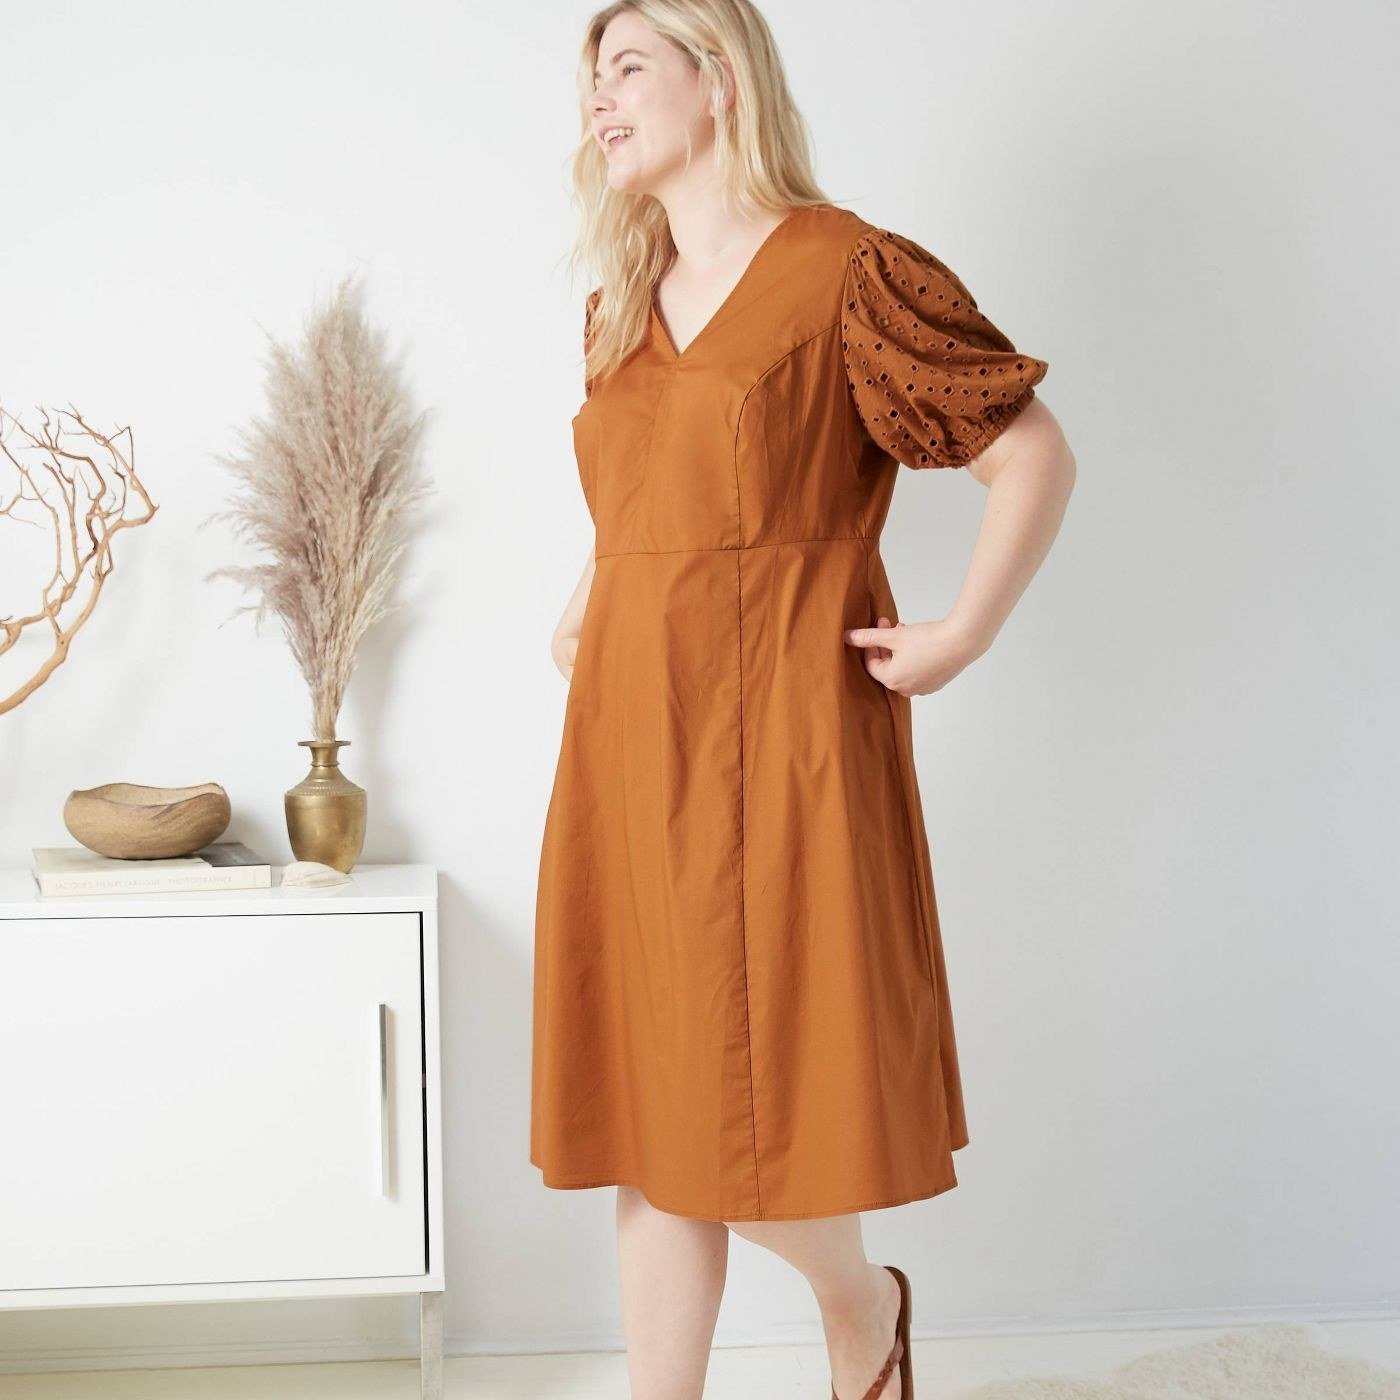 model wearing V-neck burnt orange dress with puffy sleeves